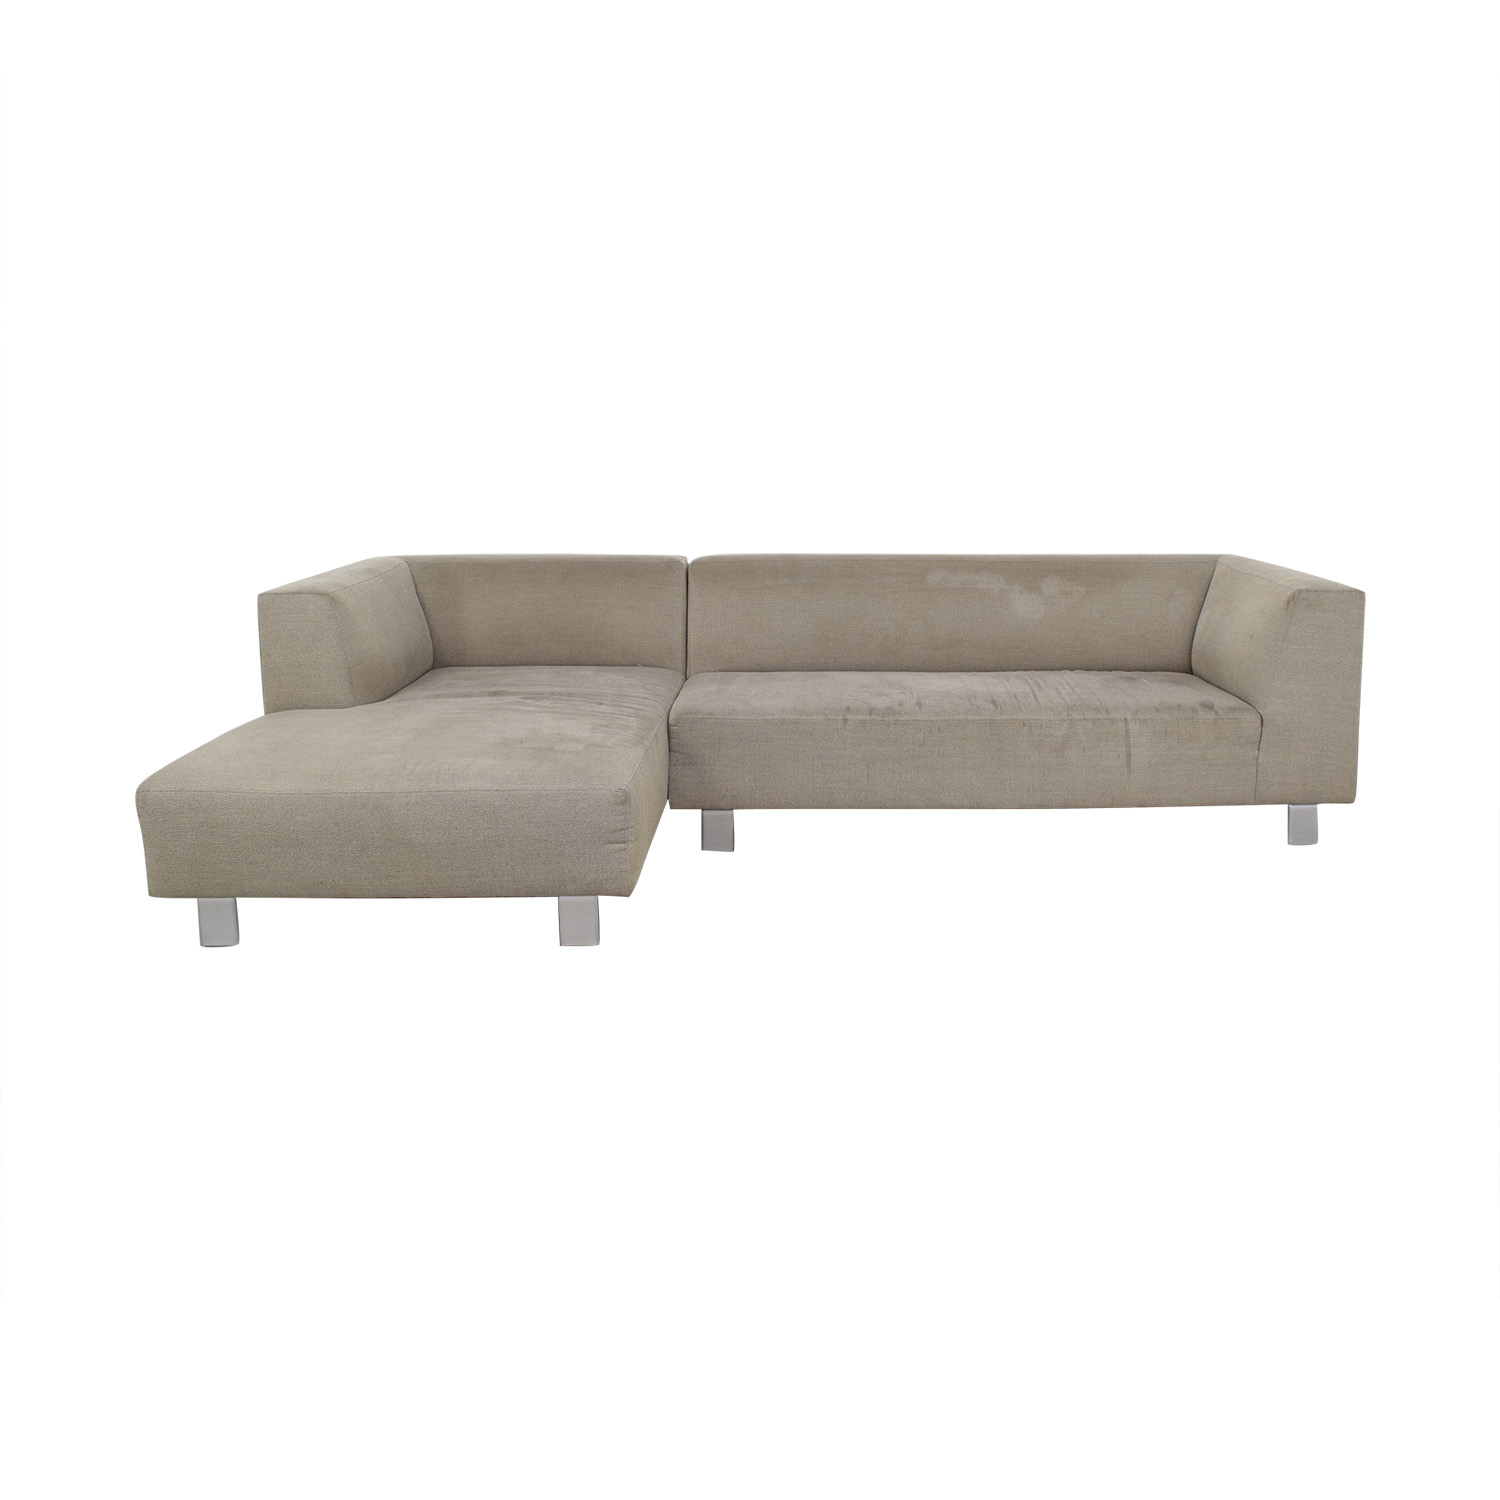 Sofa L Images 84 Off Room Board Room Board Grey L Shaped Couch Sofas